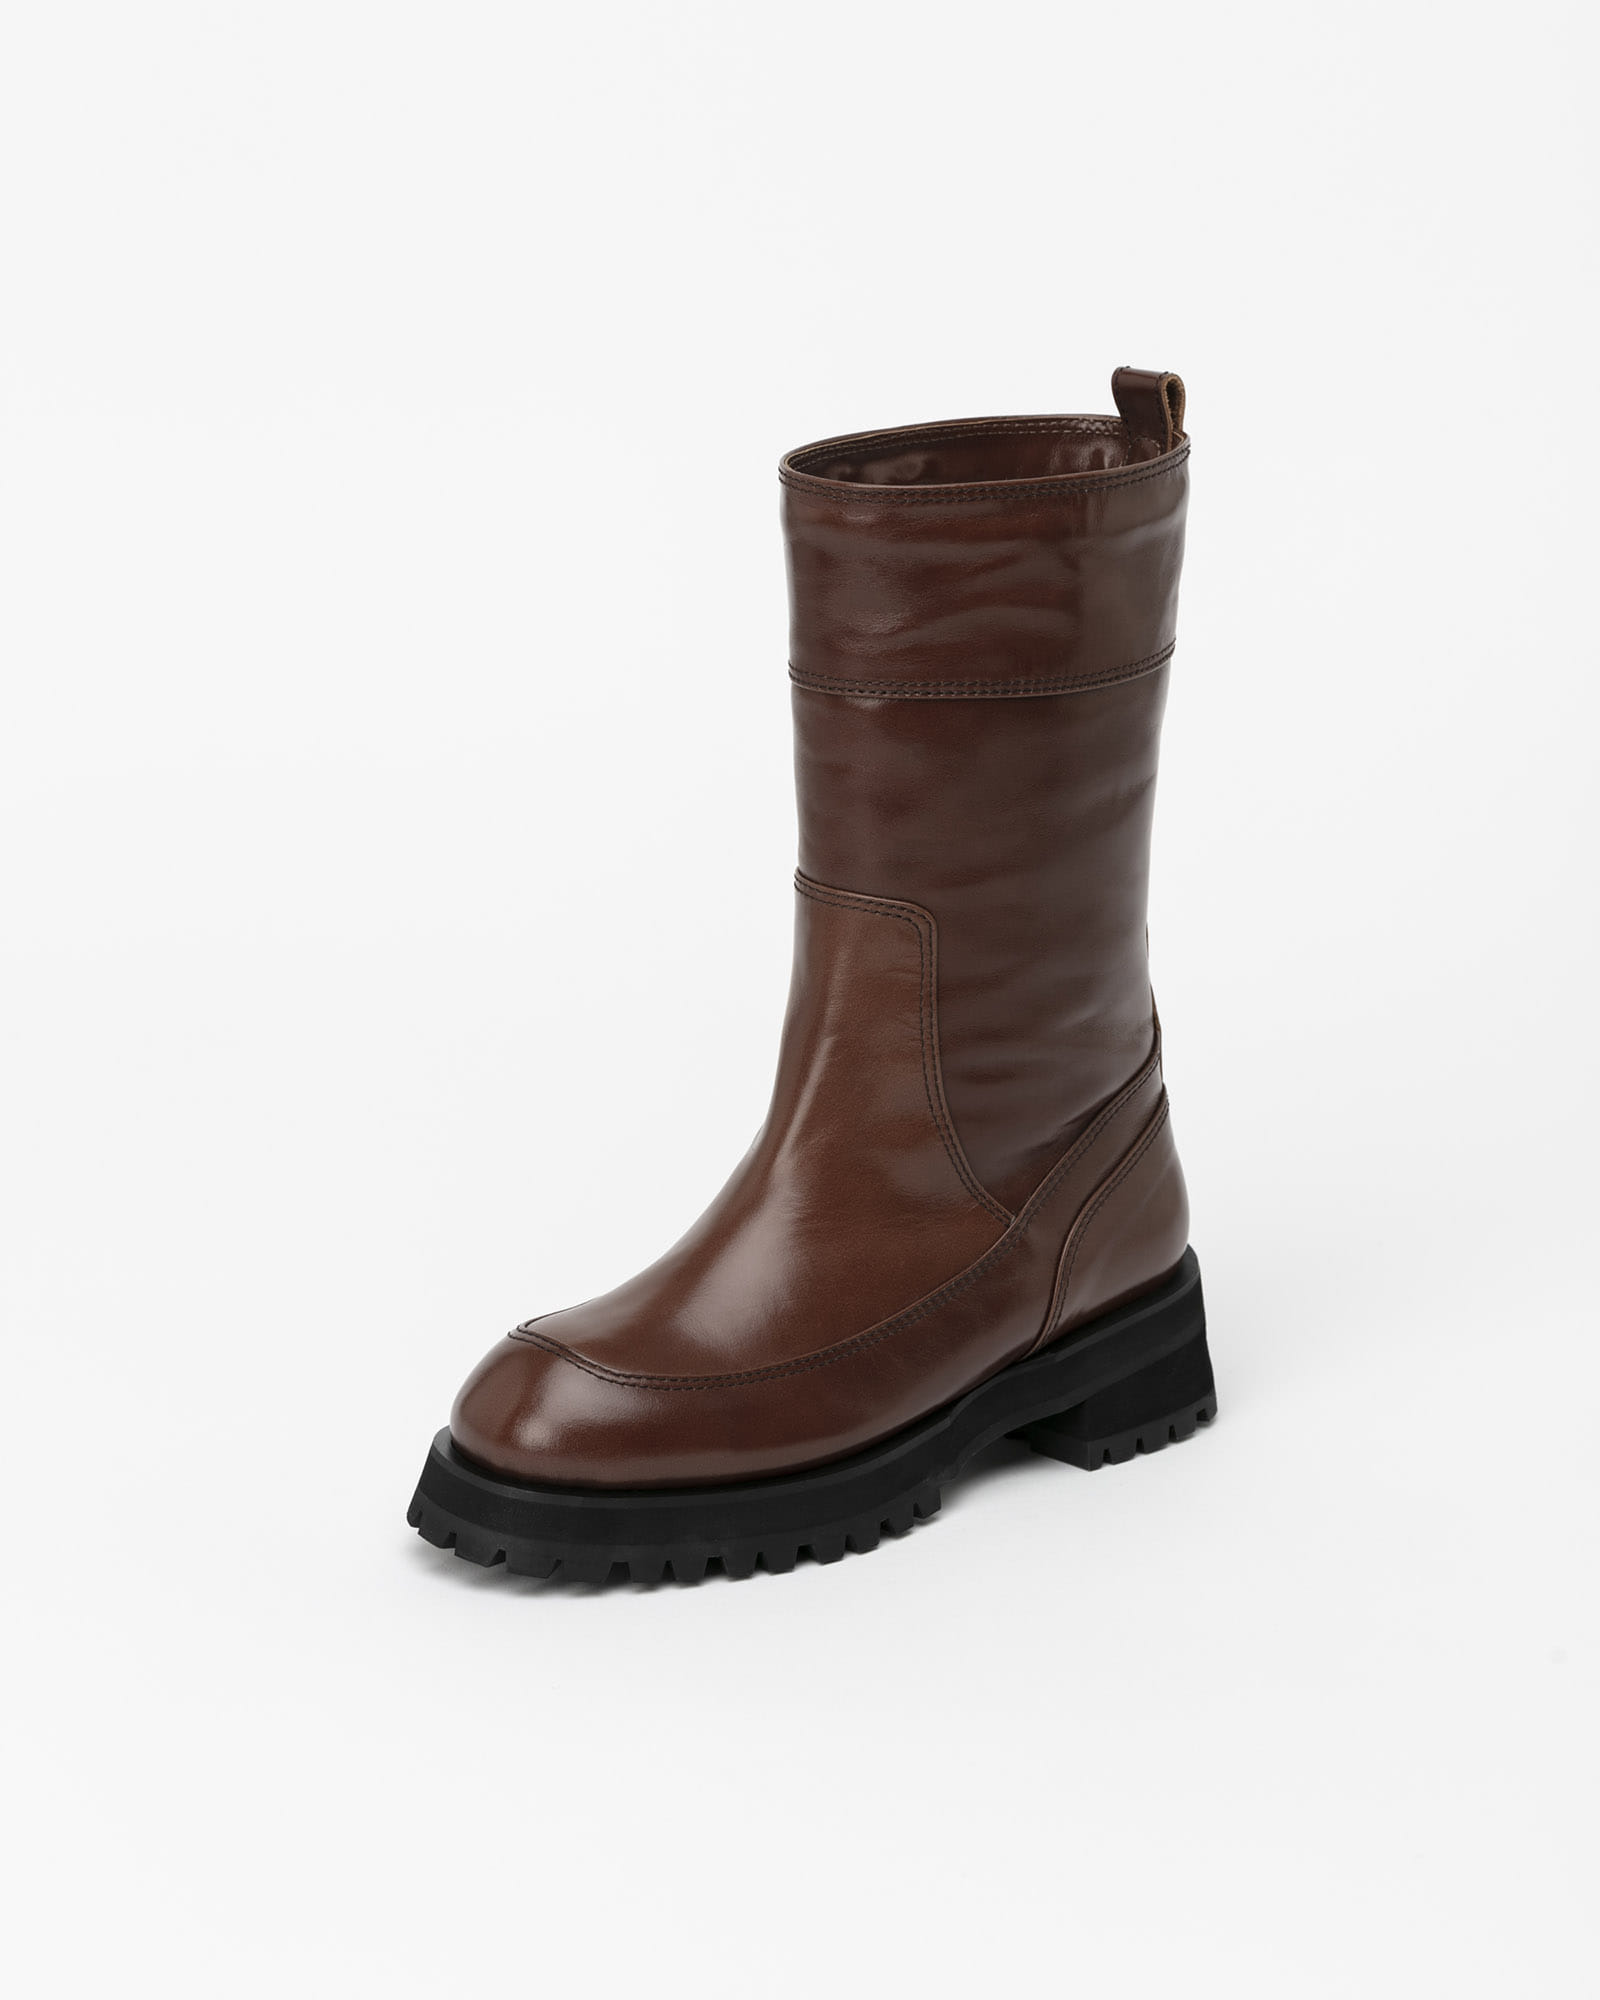 Brica Fur Lining Boots in Textured Brown